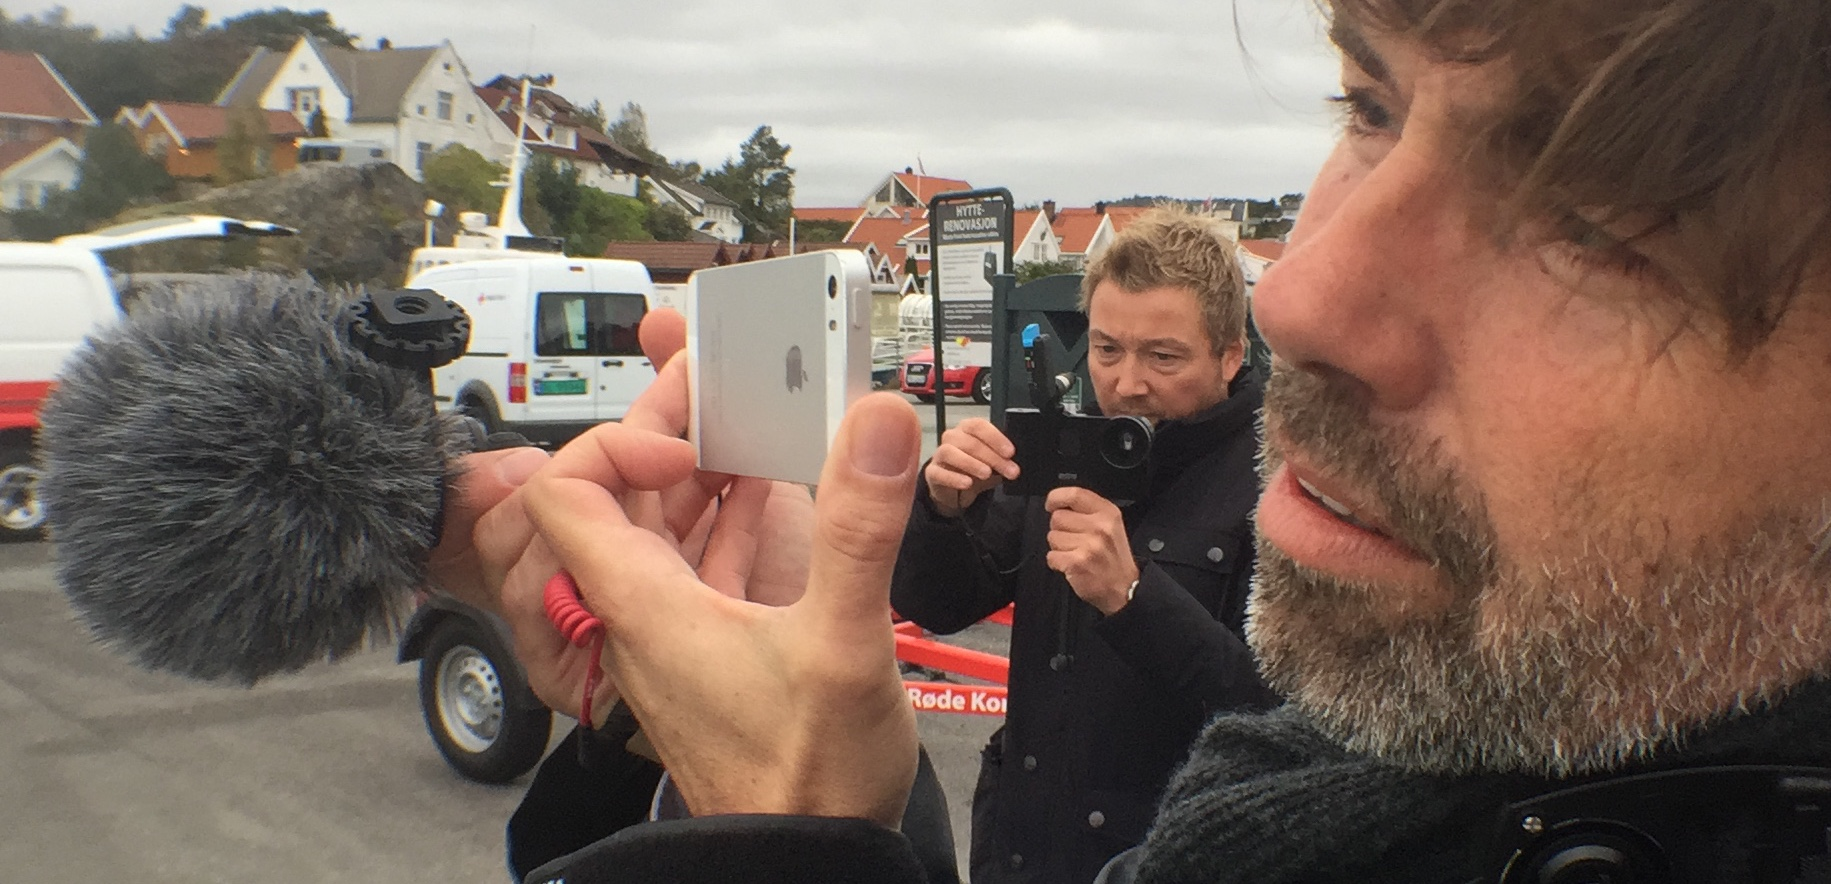 Side By Video Micro And Videomic Me A First Look Smartmojo Rode Investigative Journalist In Kristiansand Hand Holding The